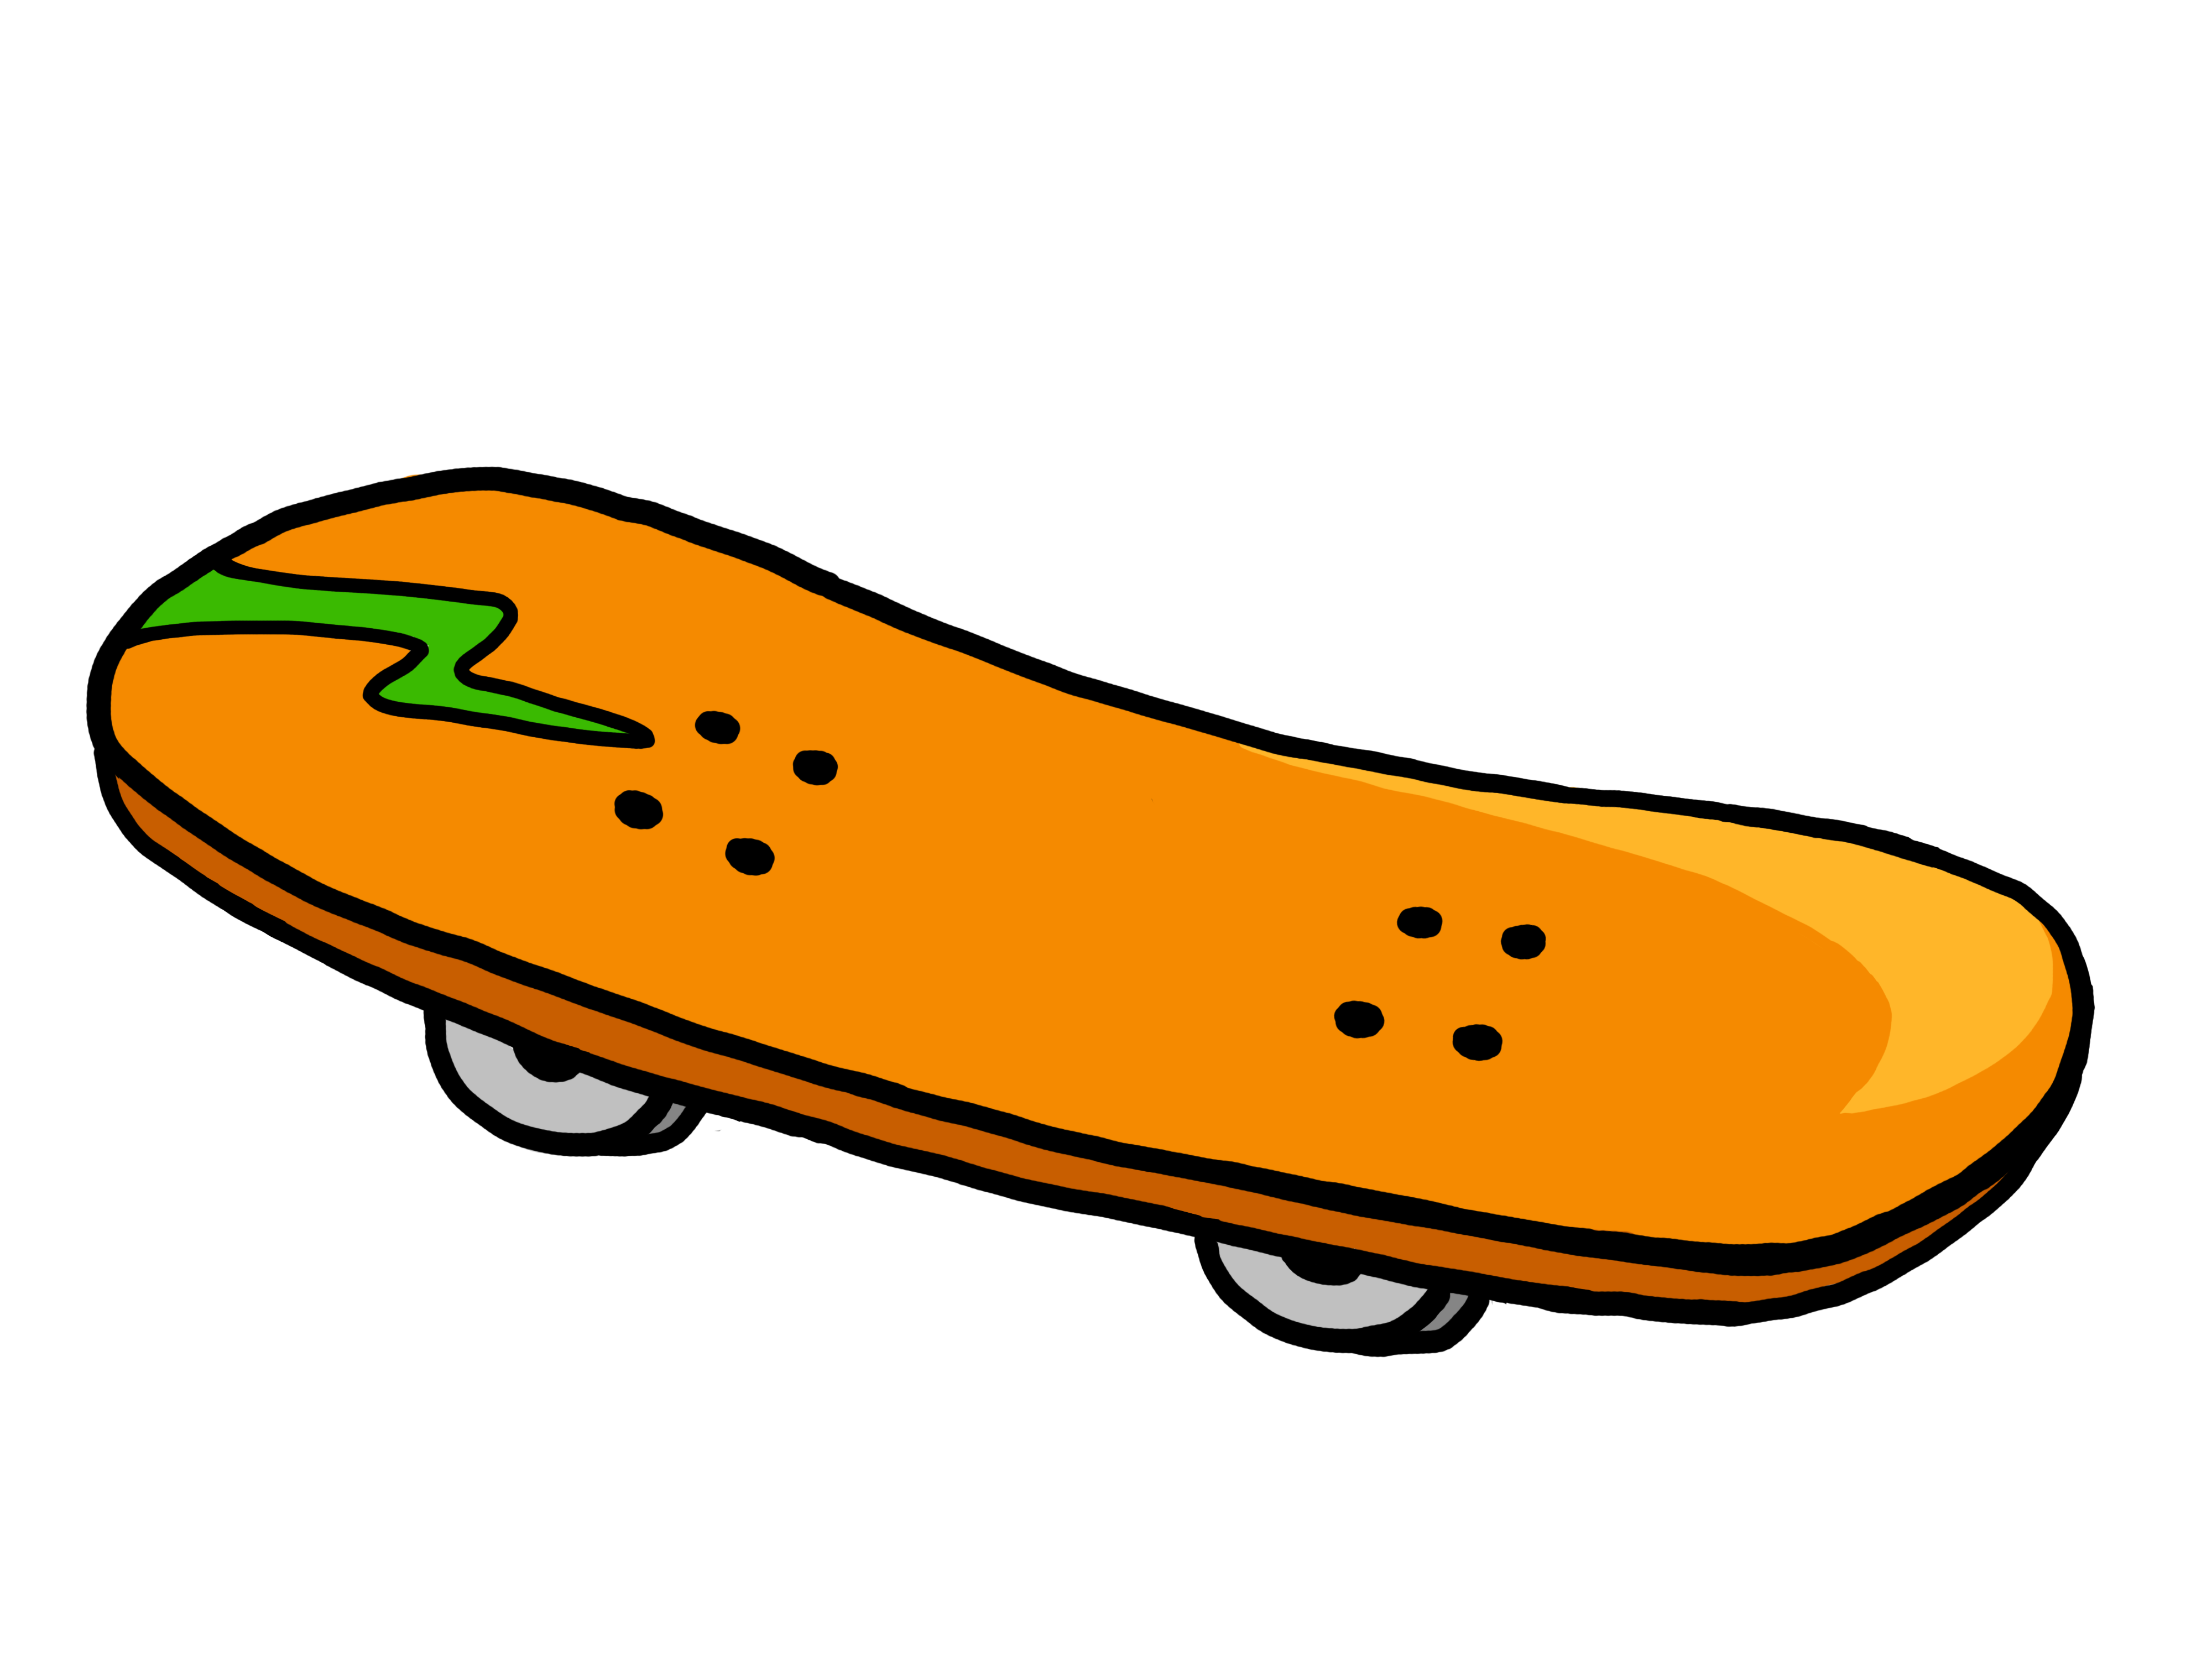 Download High Quality skateboard clipart animated.